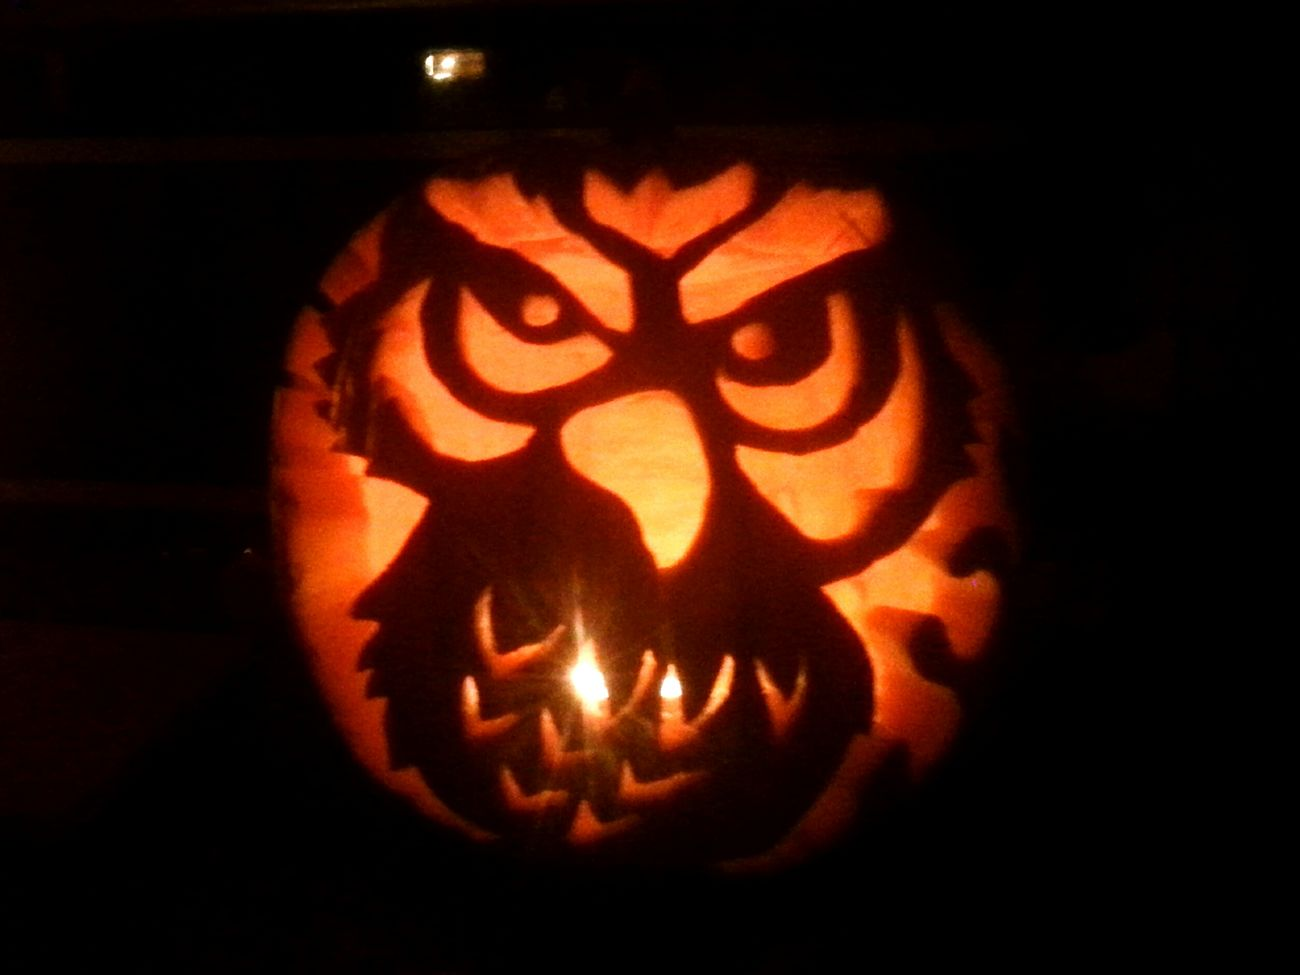 Owl Pumpkin Art Carving Popular My Best Shot Wise Guy 3 Hours Work Halloween Full Moon Harvest Moon